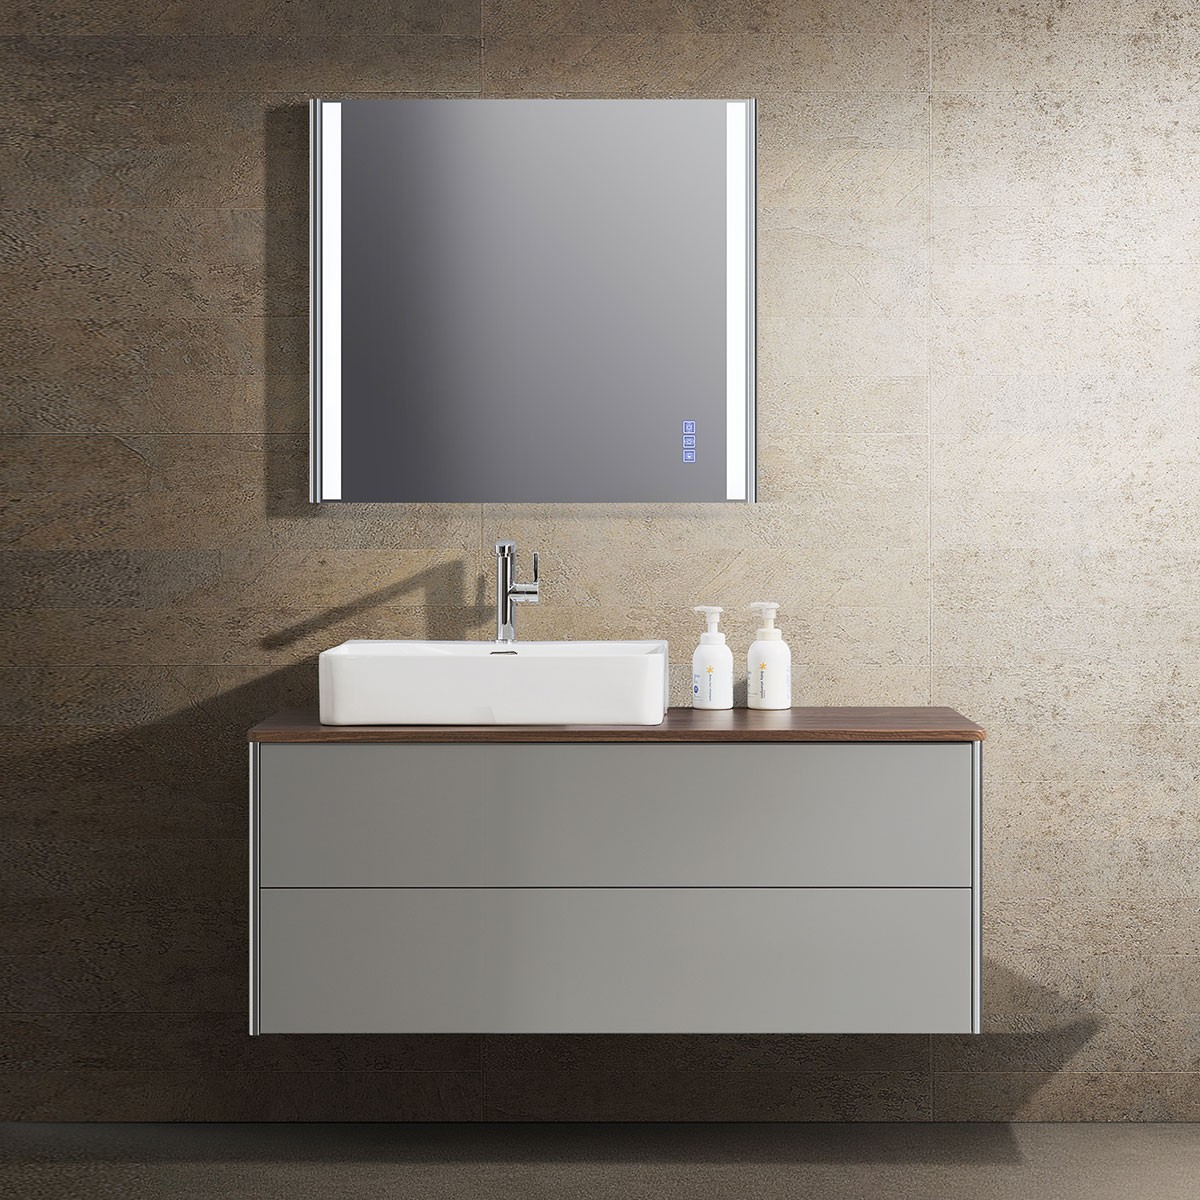 47 In. Wall Mount Bathroom Vanity Set with LED Mirror (DW1202-SET)